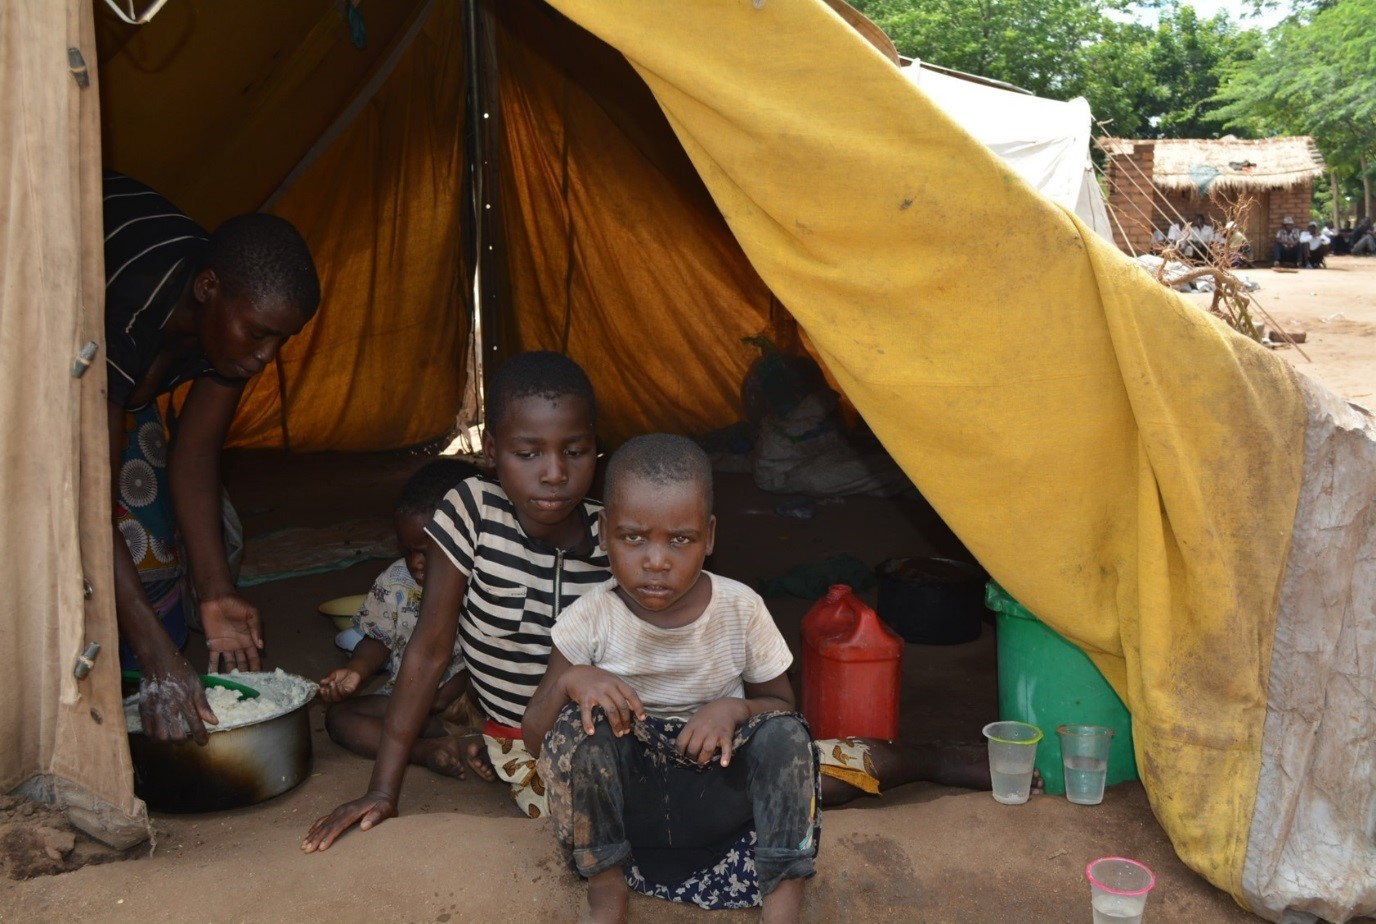 Thousands flock to camps as homes are swept away by floods in Malawi